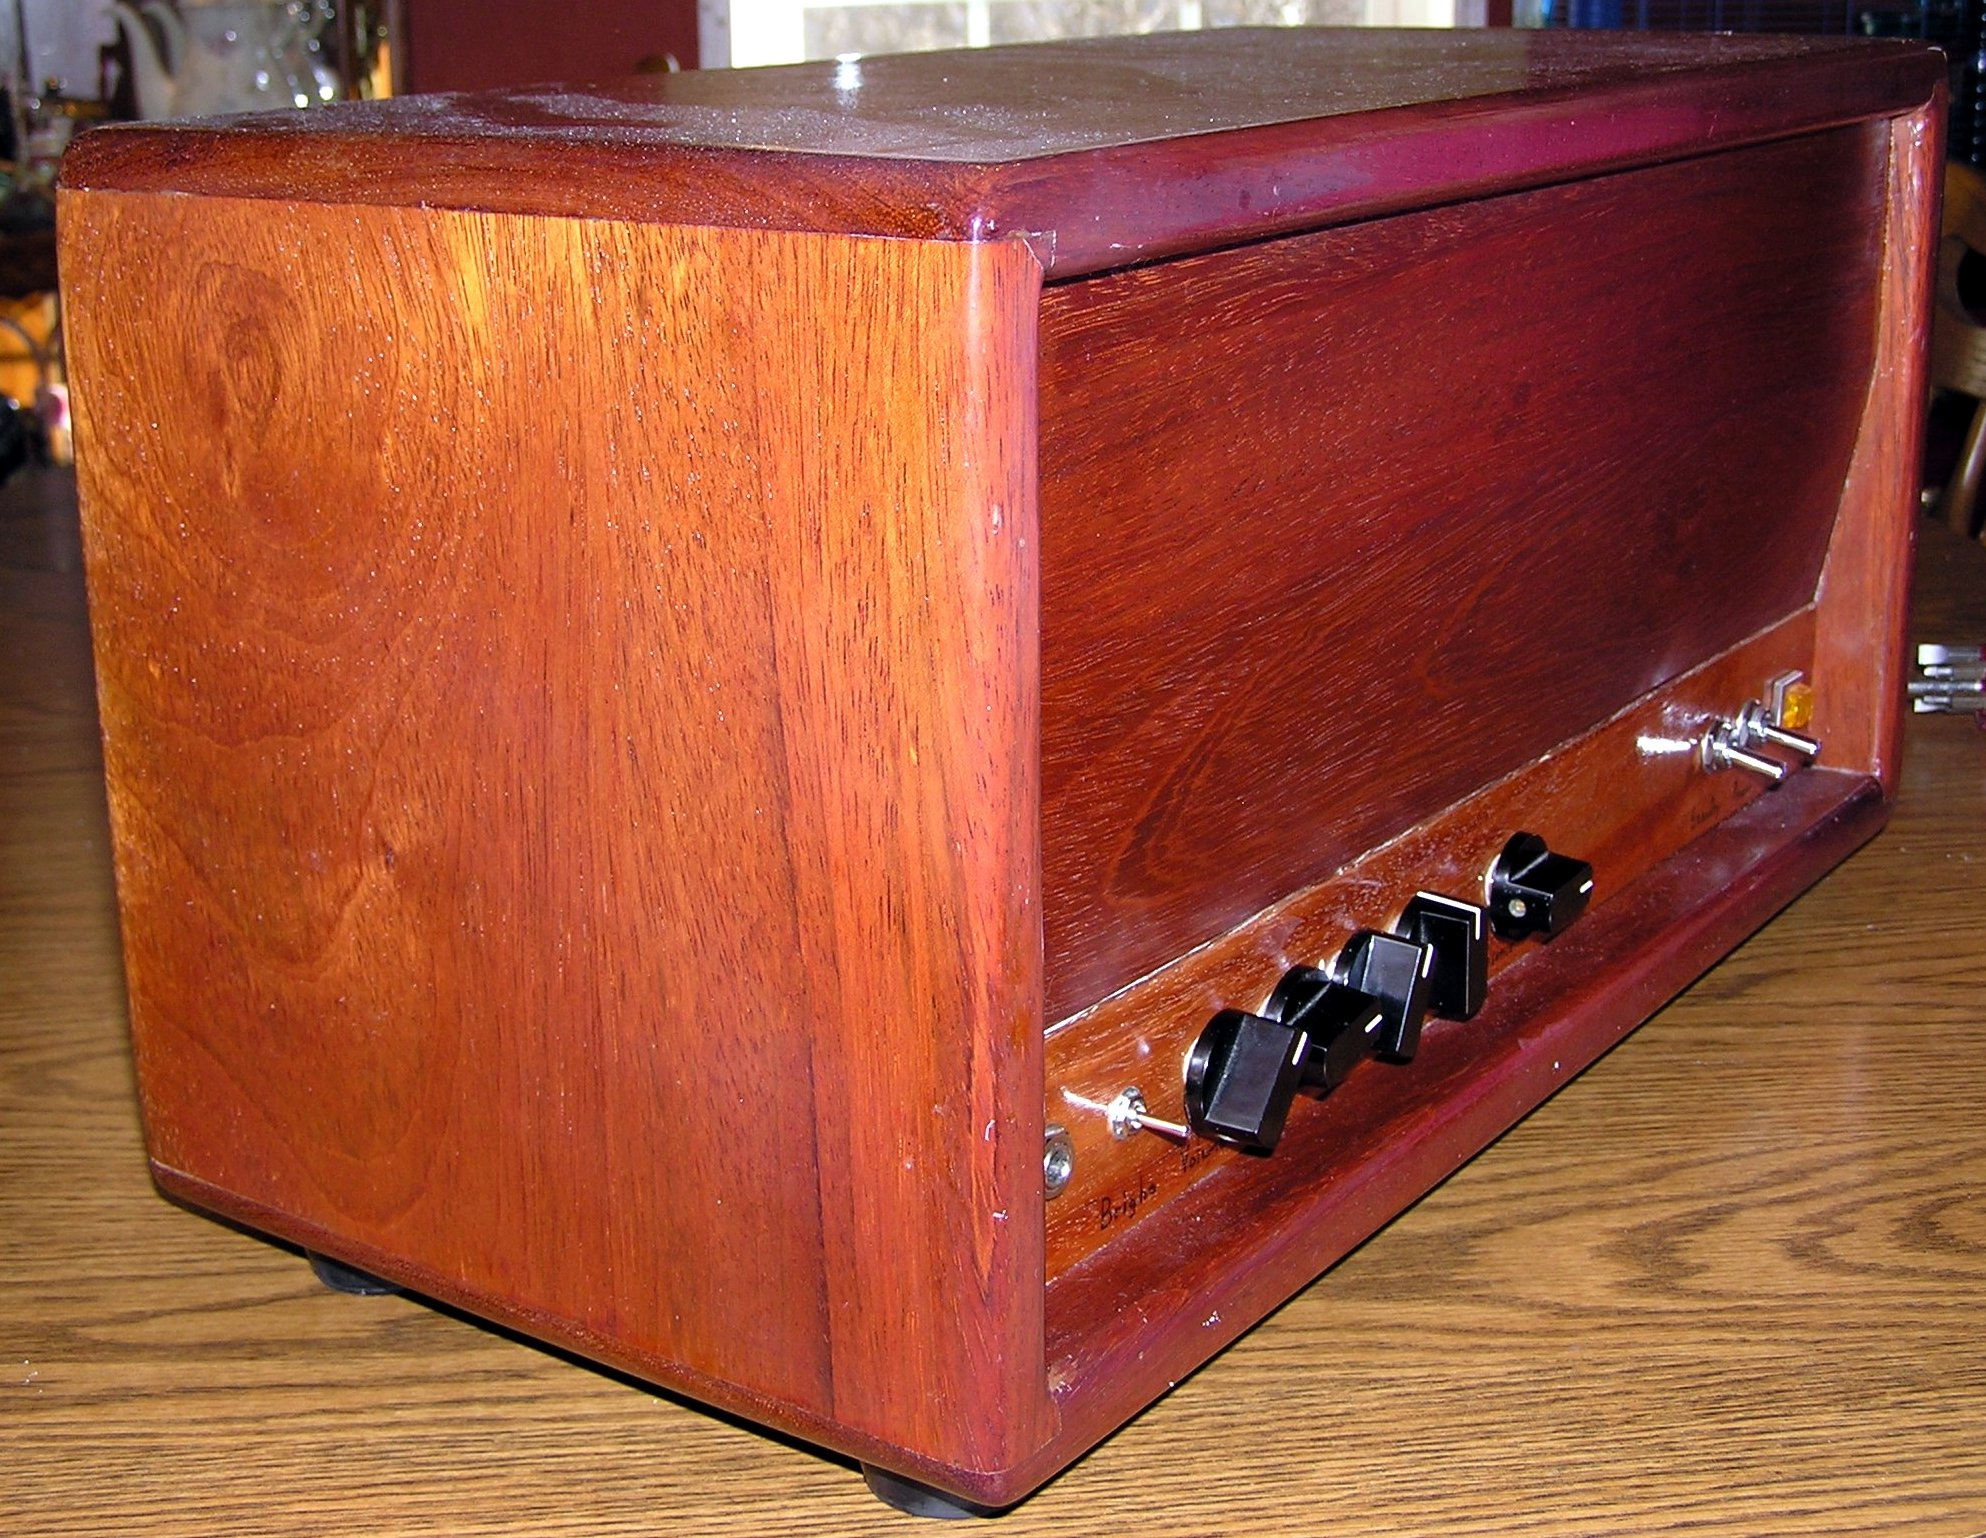 Trainwreck Express clone guitar amplifier